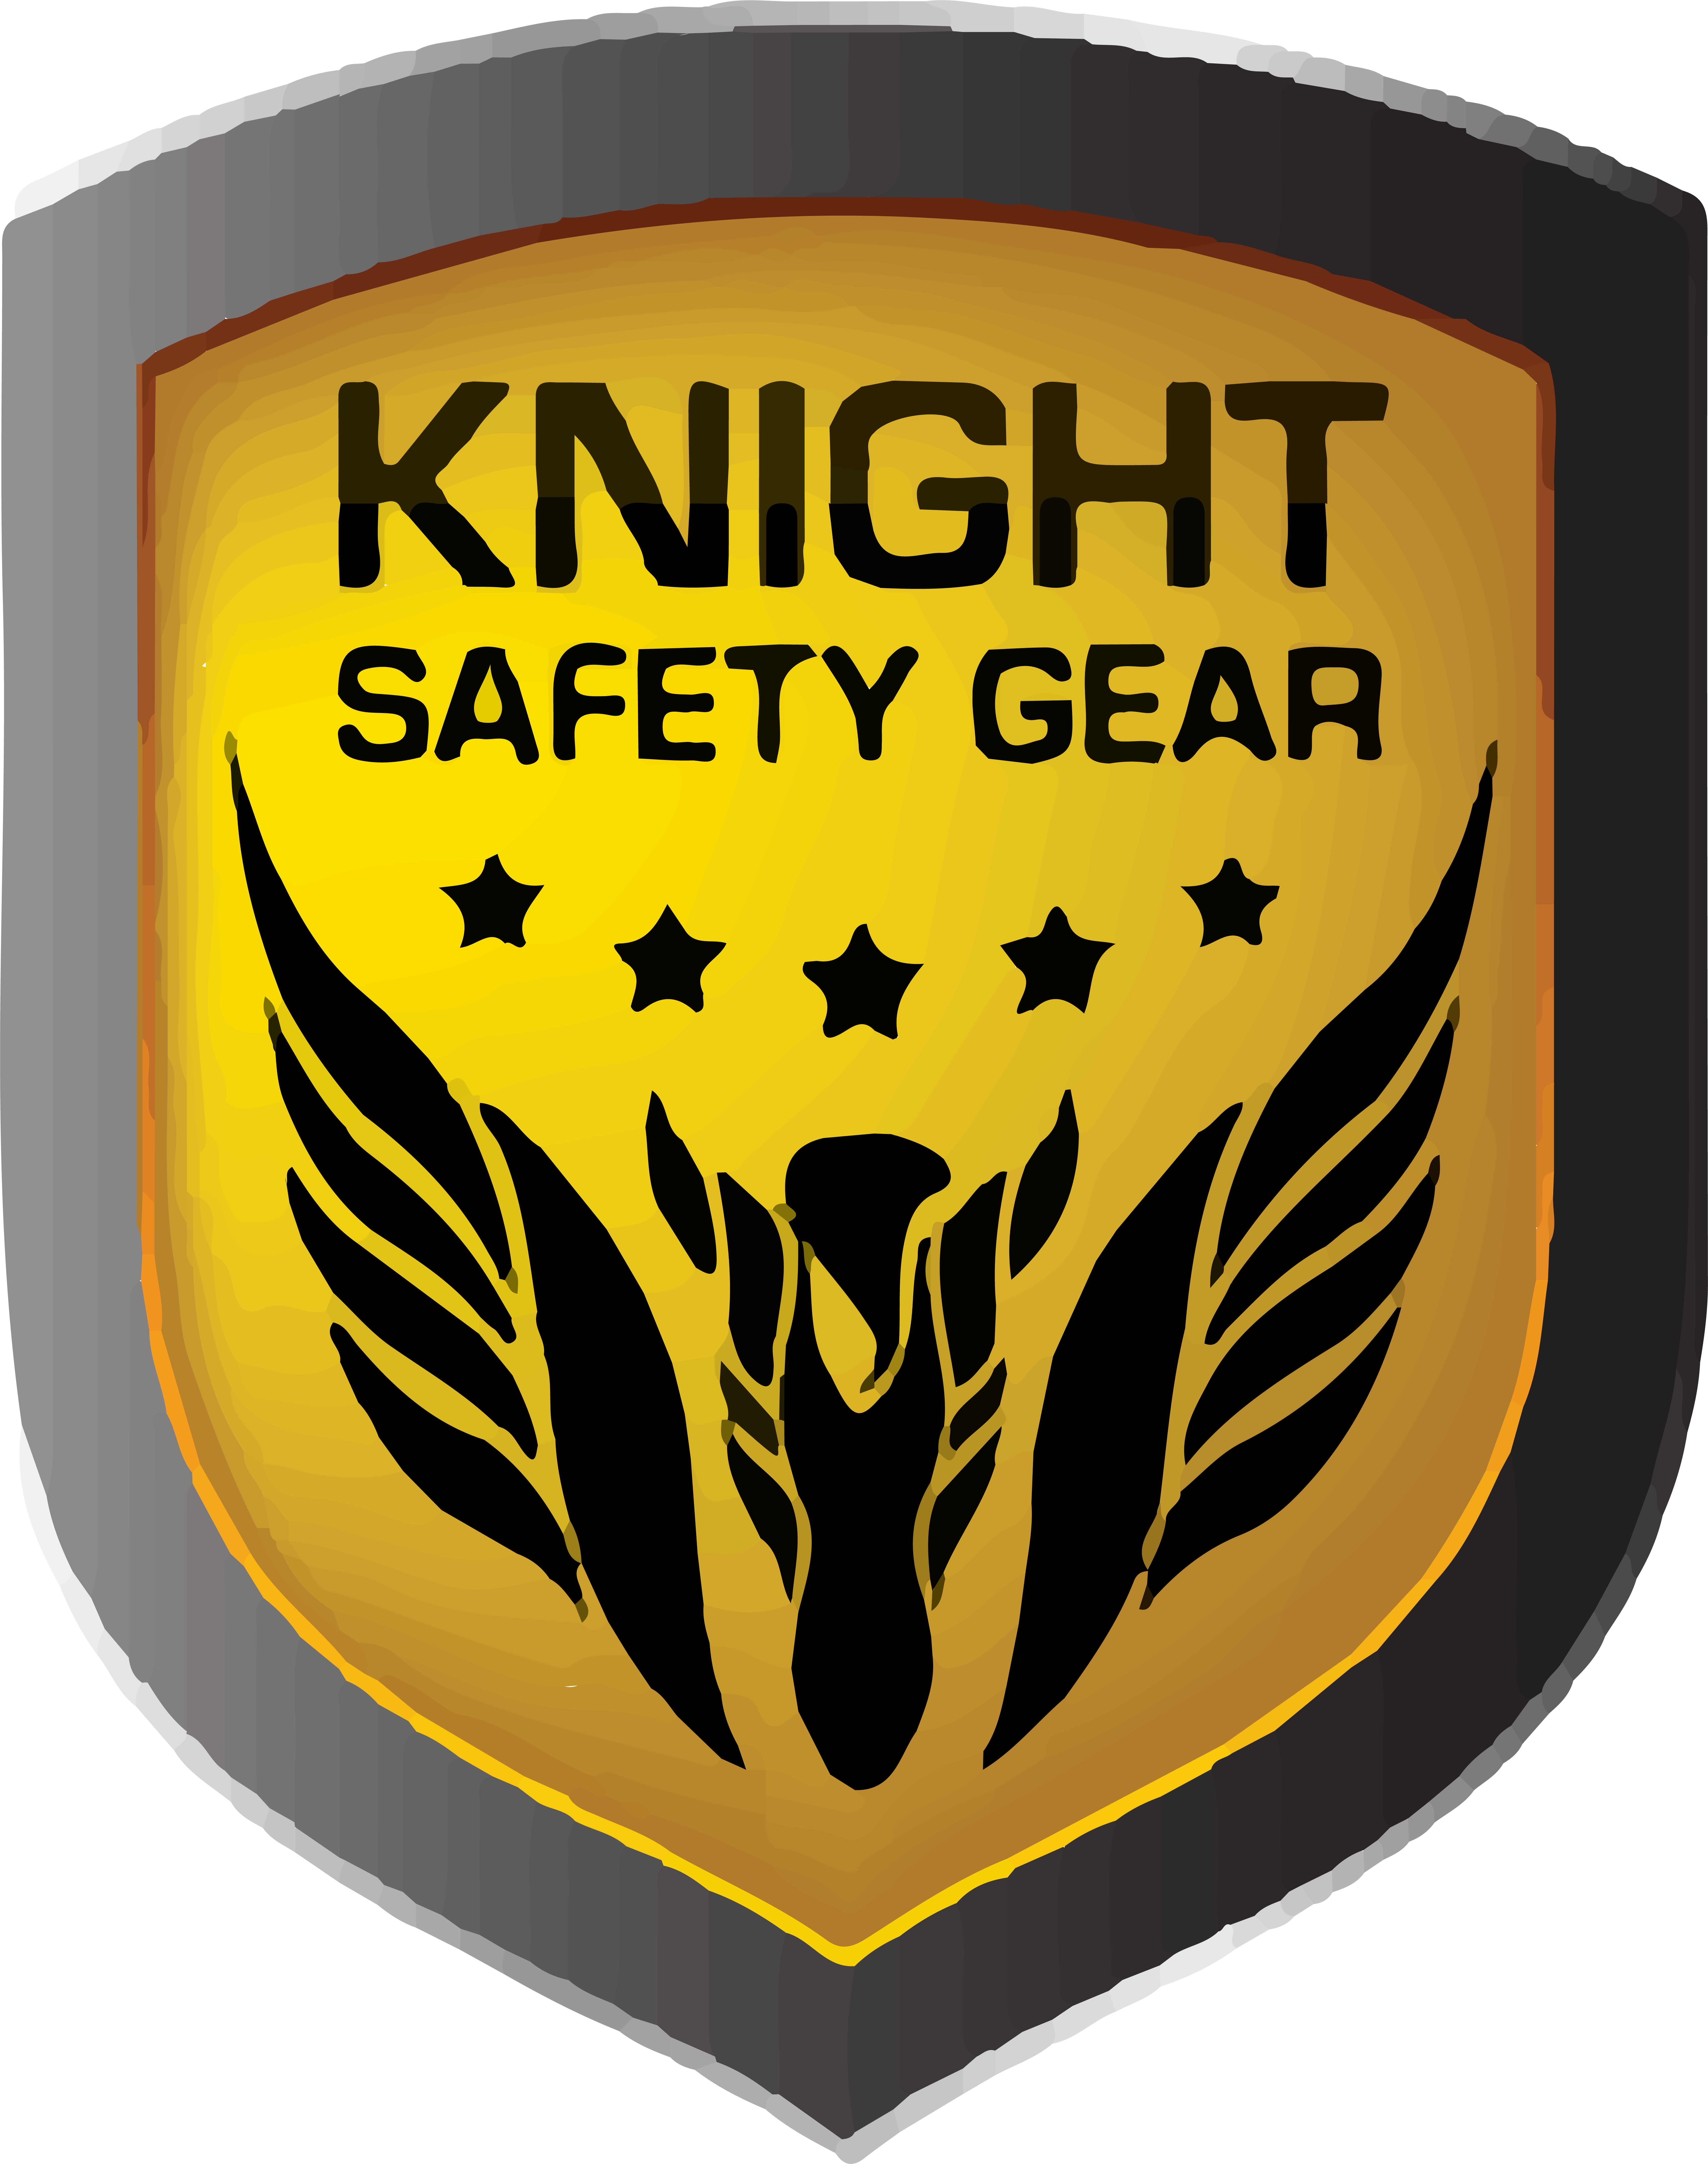 knight safety gear logo with no background